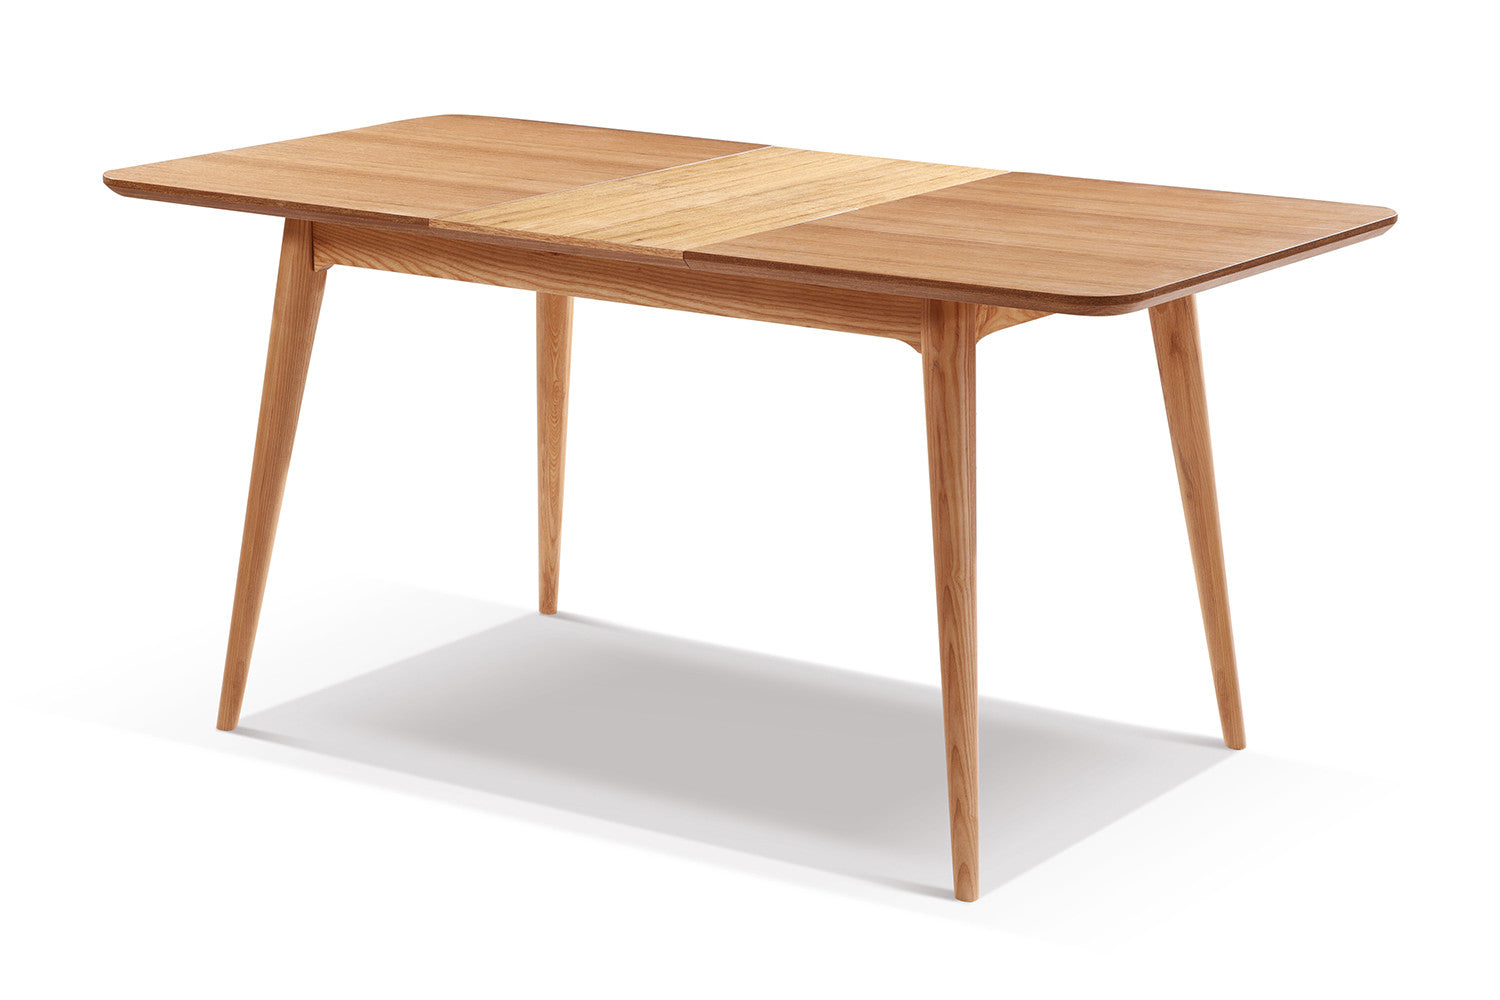 Table de salle manger extensible en bois adda dewarens for Table design extensible salle a manger